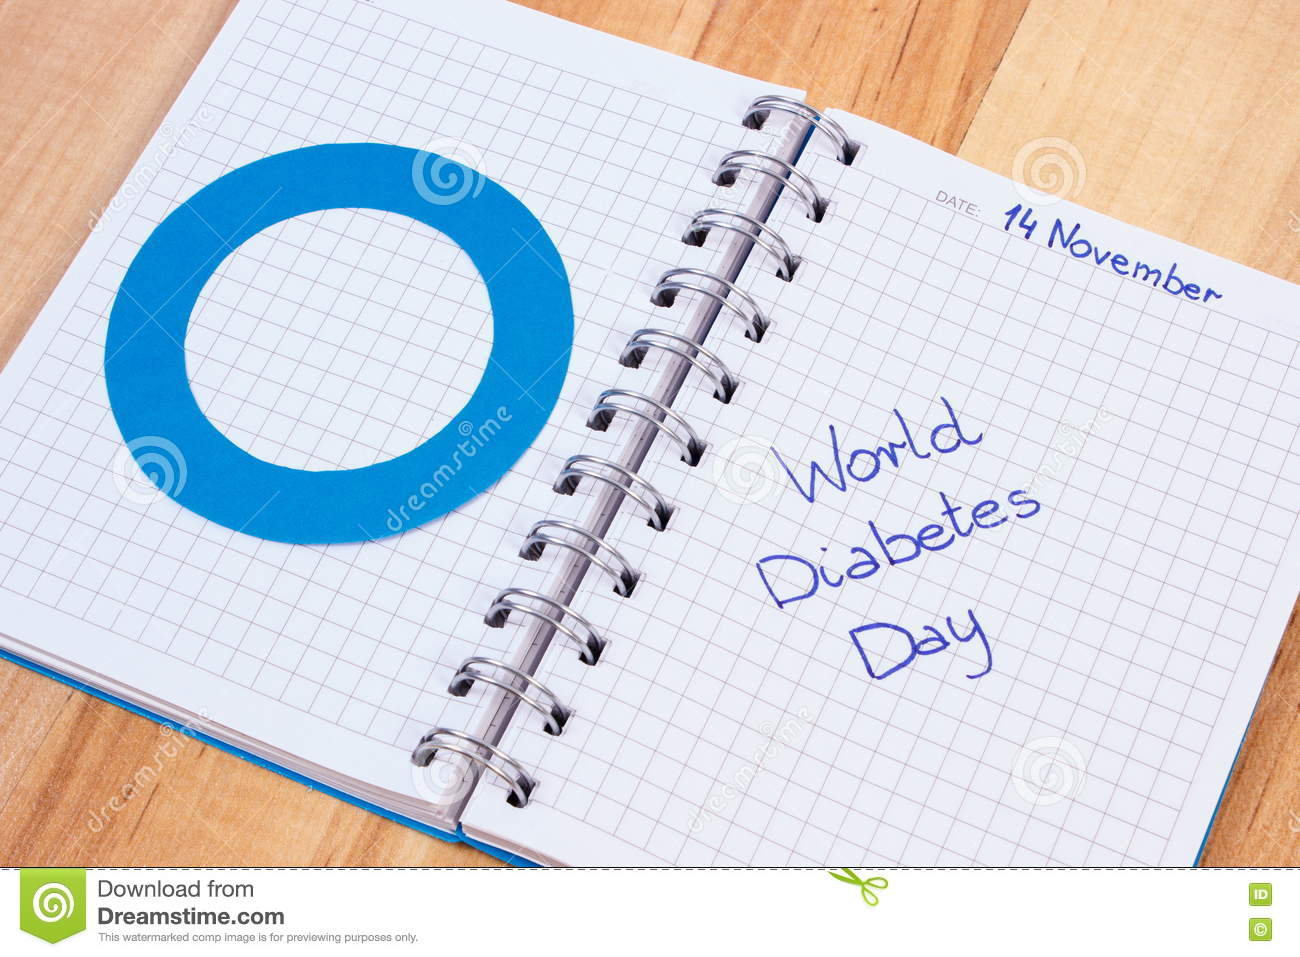 world diabetes day written in notebook and blue circle symbol of world diabetes day written in notebook and blue circle symbol of diabetic